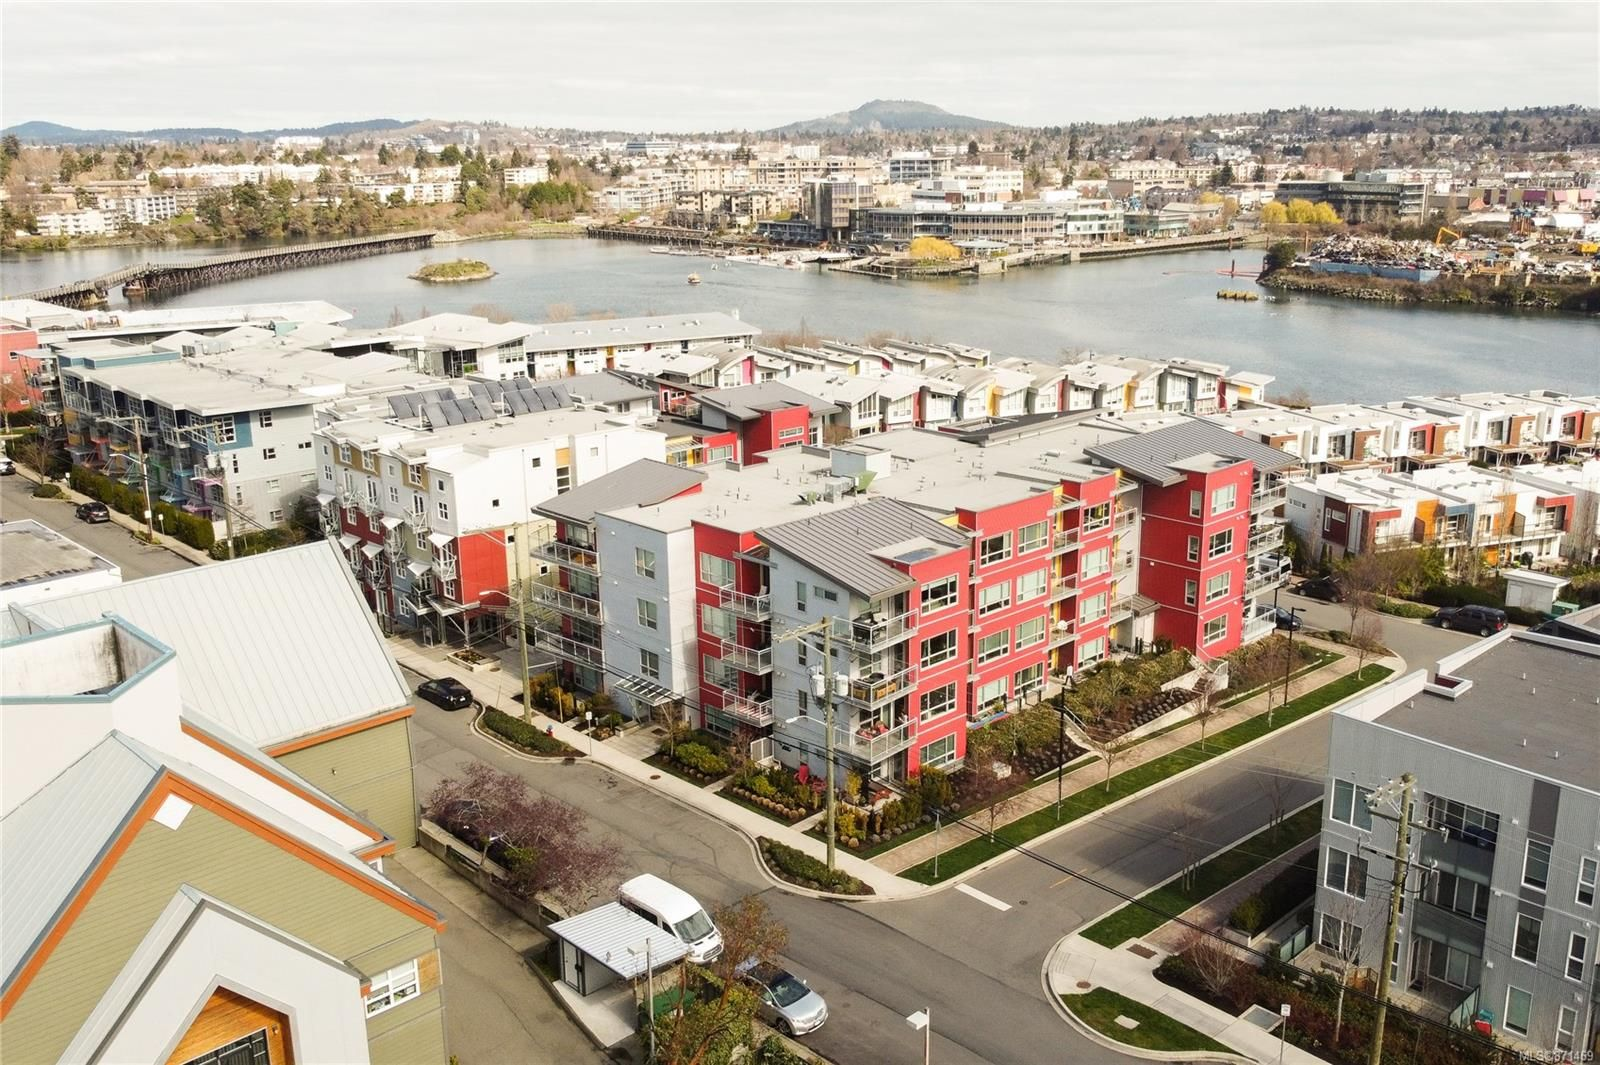 Main Photo: 204 785 Tyee Rd in : VW Victoria West Condo for sale (Victoria West)  : MLS®# 871469